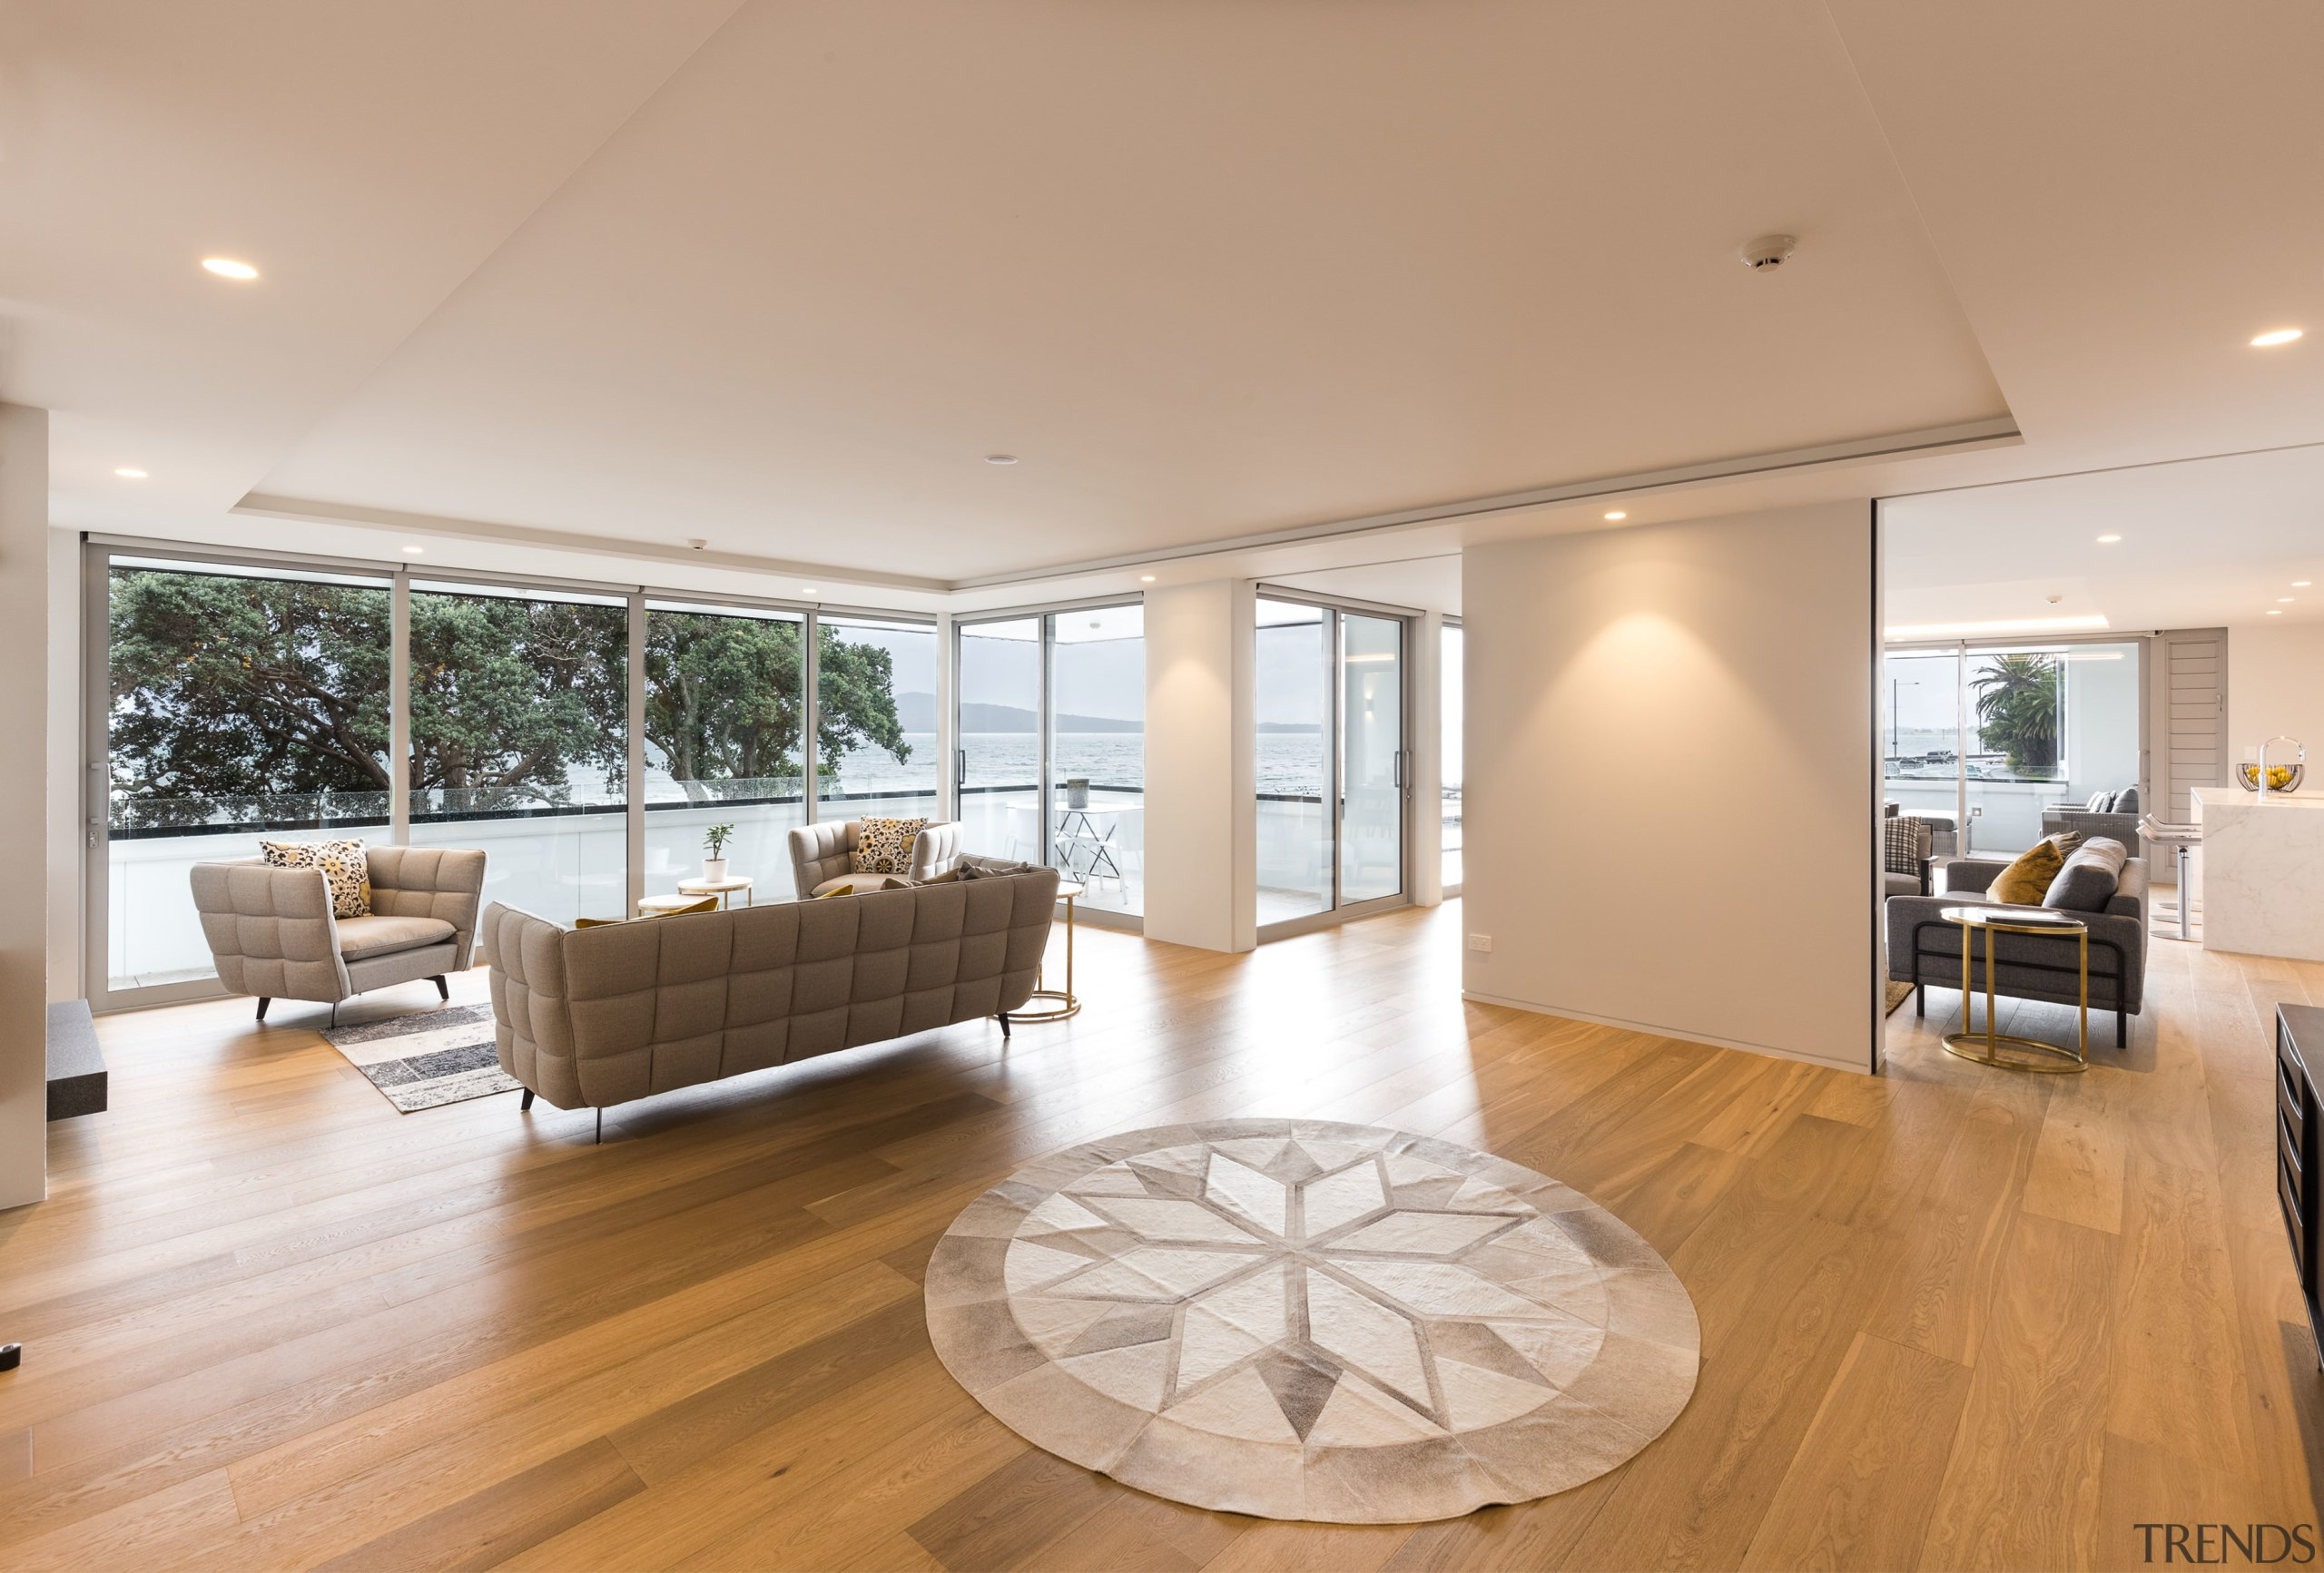 Warm welcome  the look of pale wood apartment, architecture, ceiling, estate, floor, flooring, hardwood, home, house, interior design, laminate flooring, living room, penthouse apartment, property, real estate, window, wood, wood flooring, orange, gray